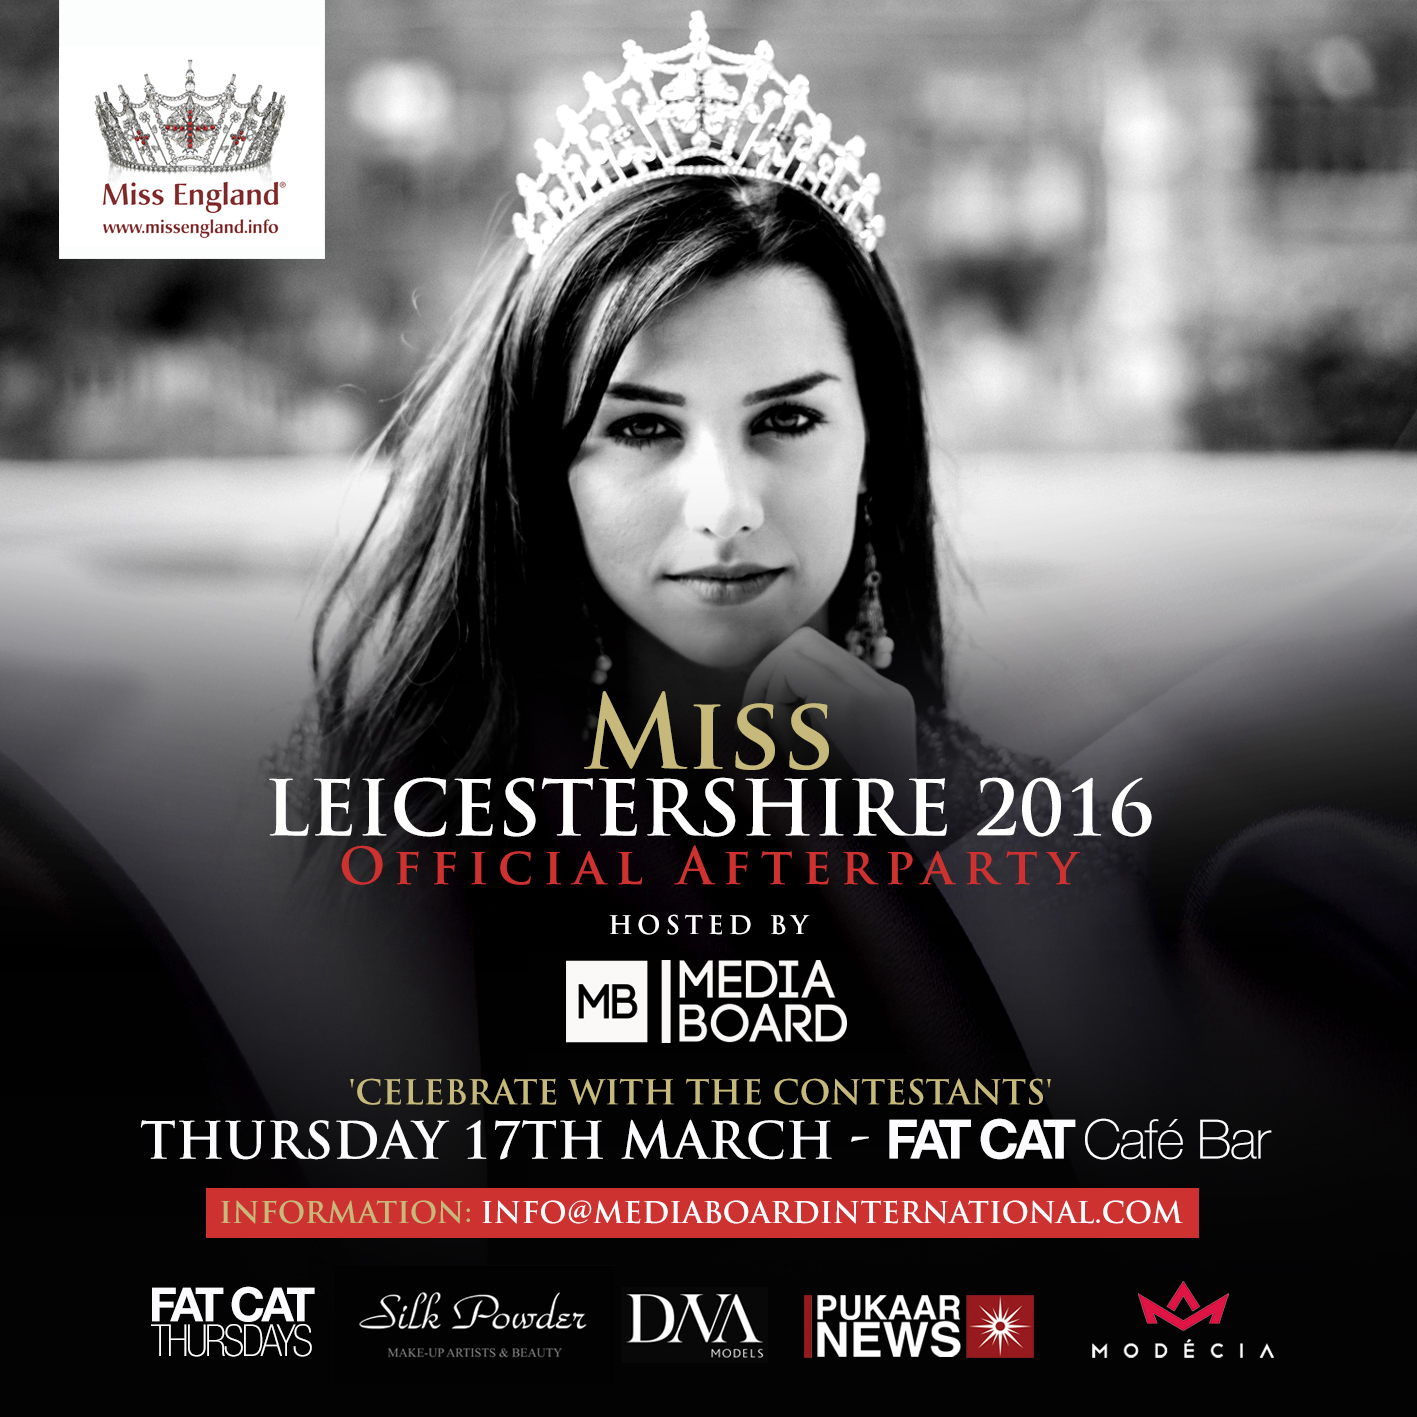 Media Board host Miss Leicestershire 2016 Afterparty